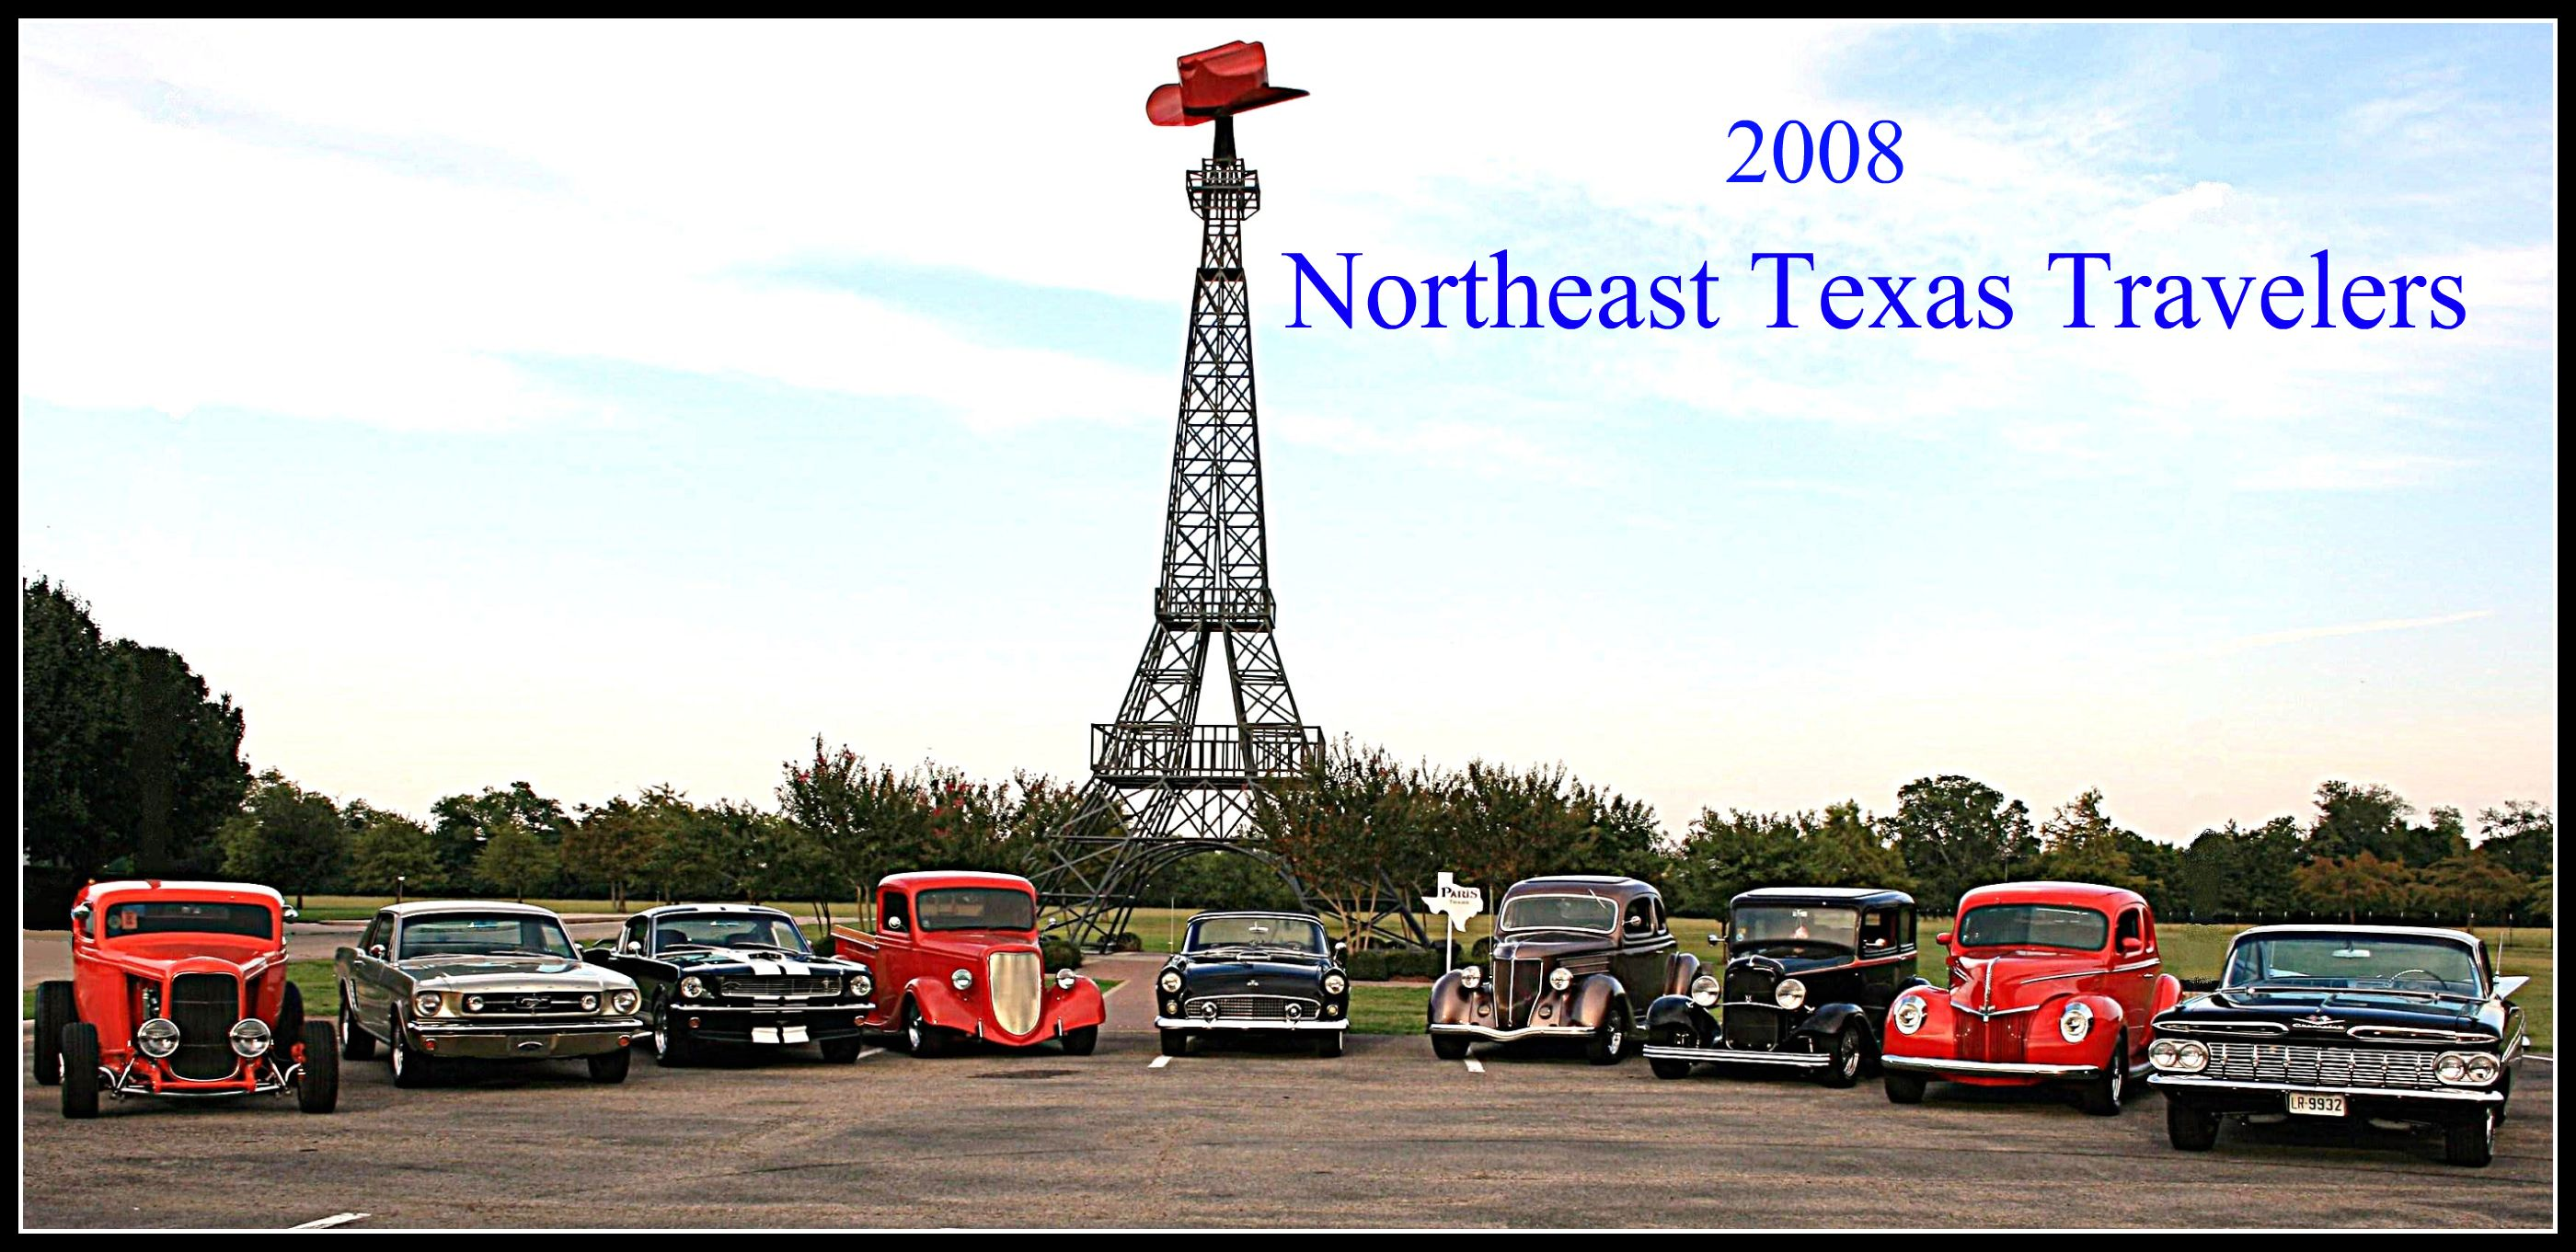 Northeast Texas Travelers Home - Car shows north east